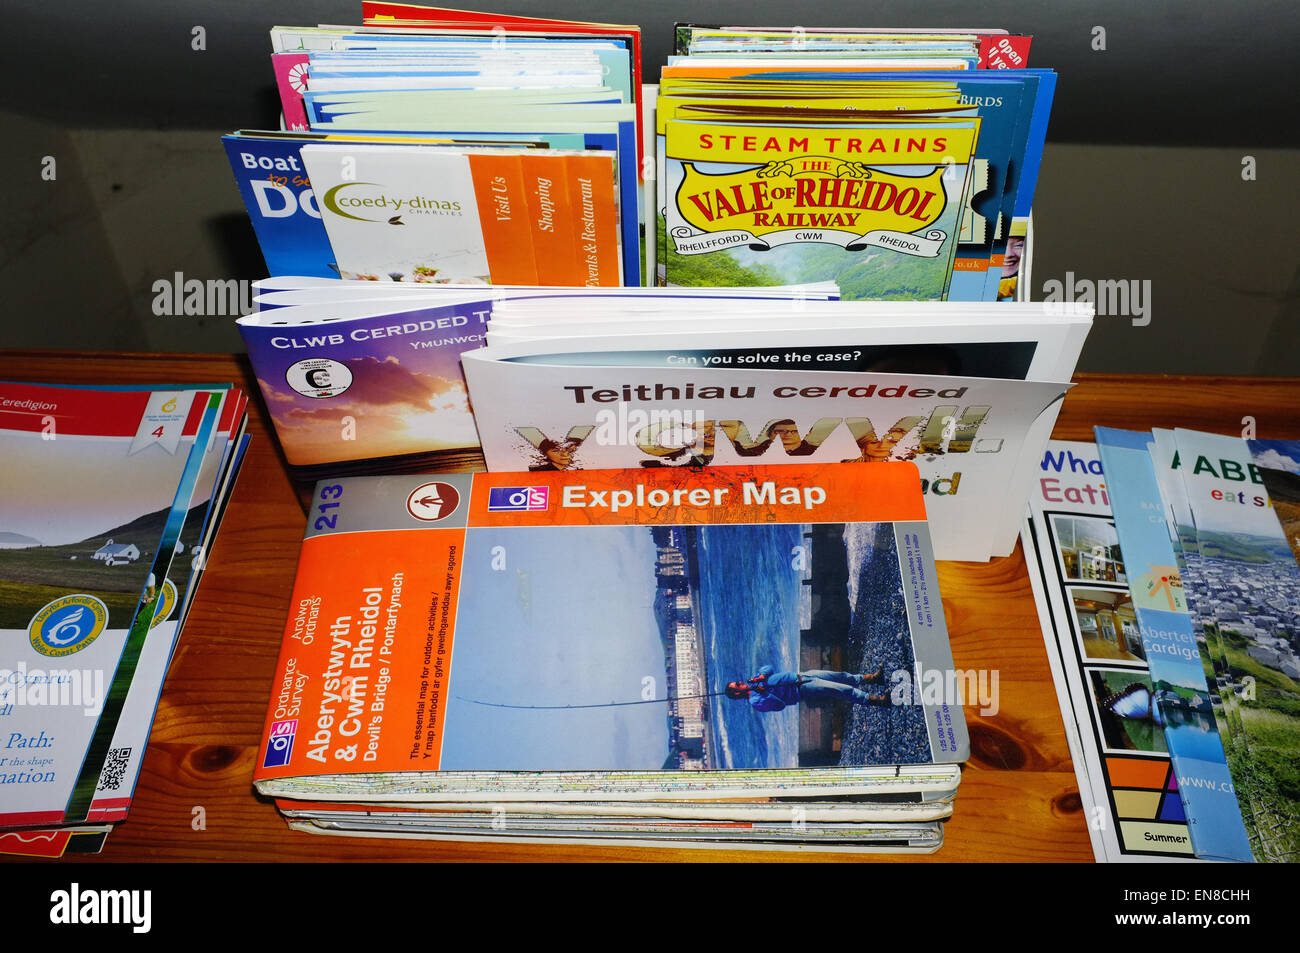 A collection of maps and tourism leaflets on display inside a B&B in Mid Wales. - Stock Image